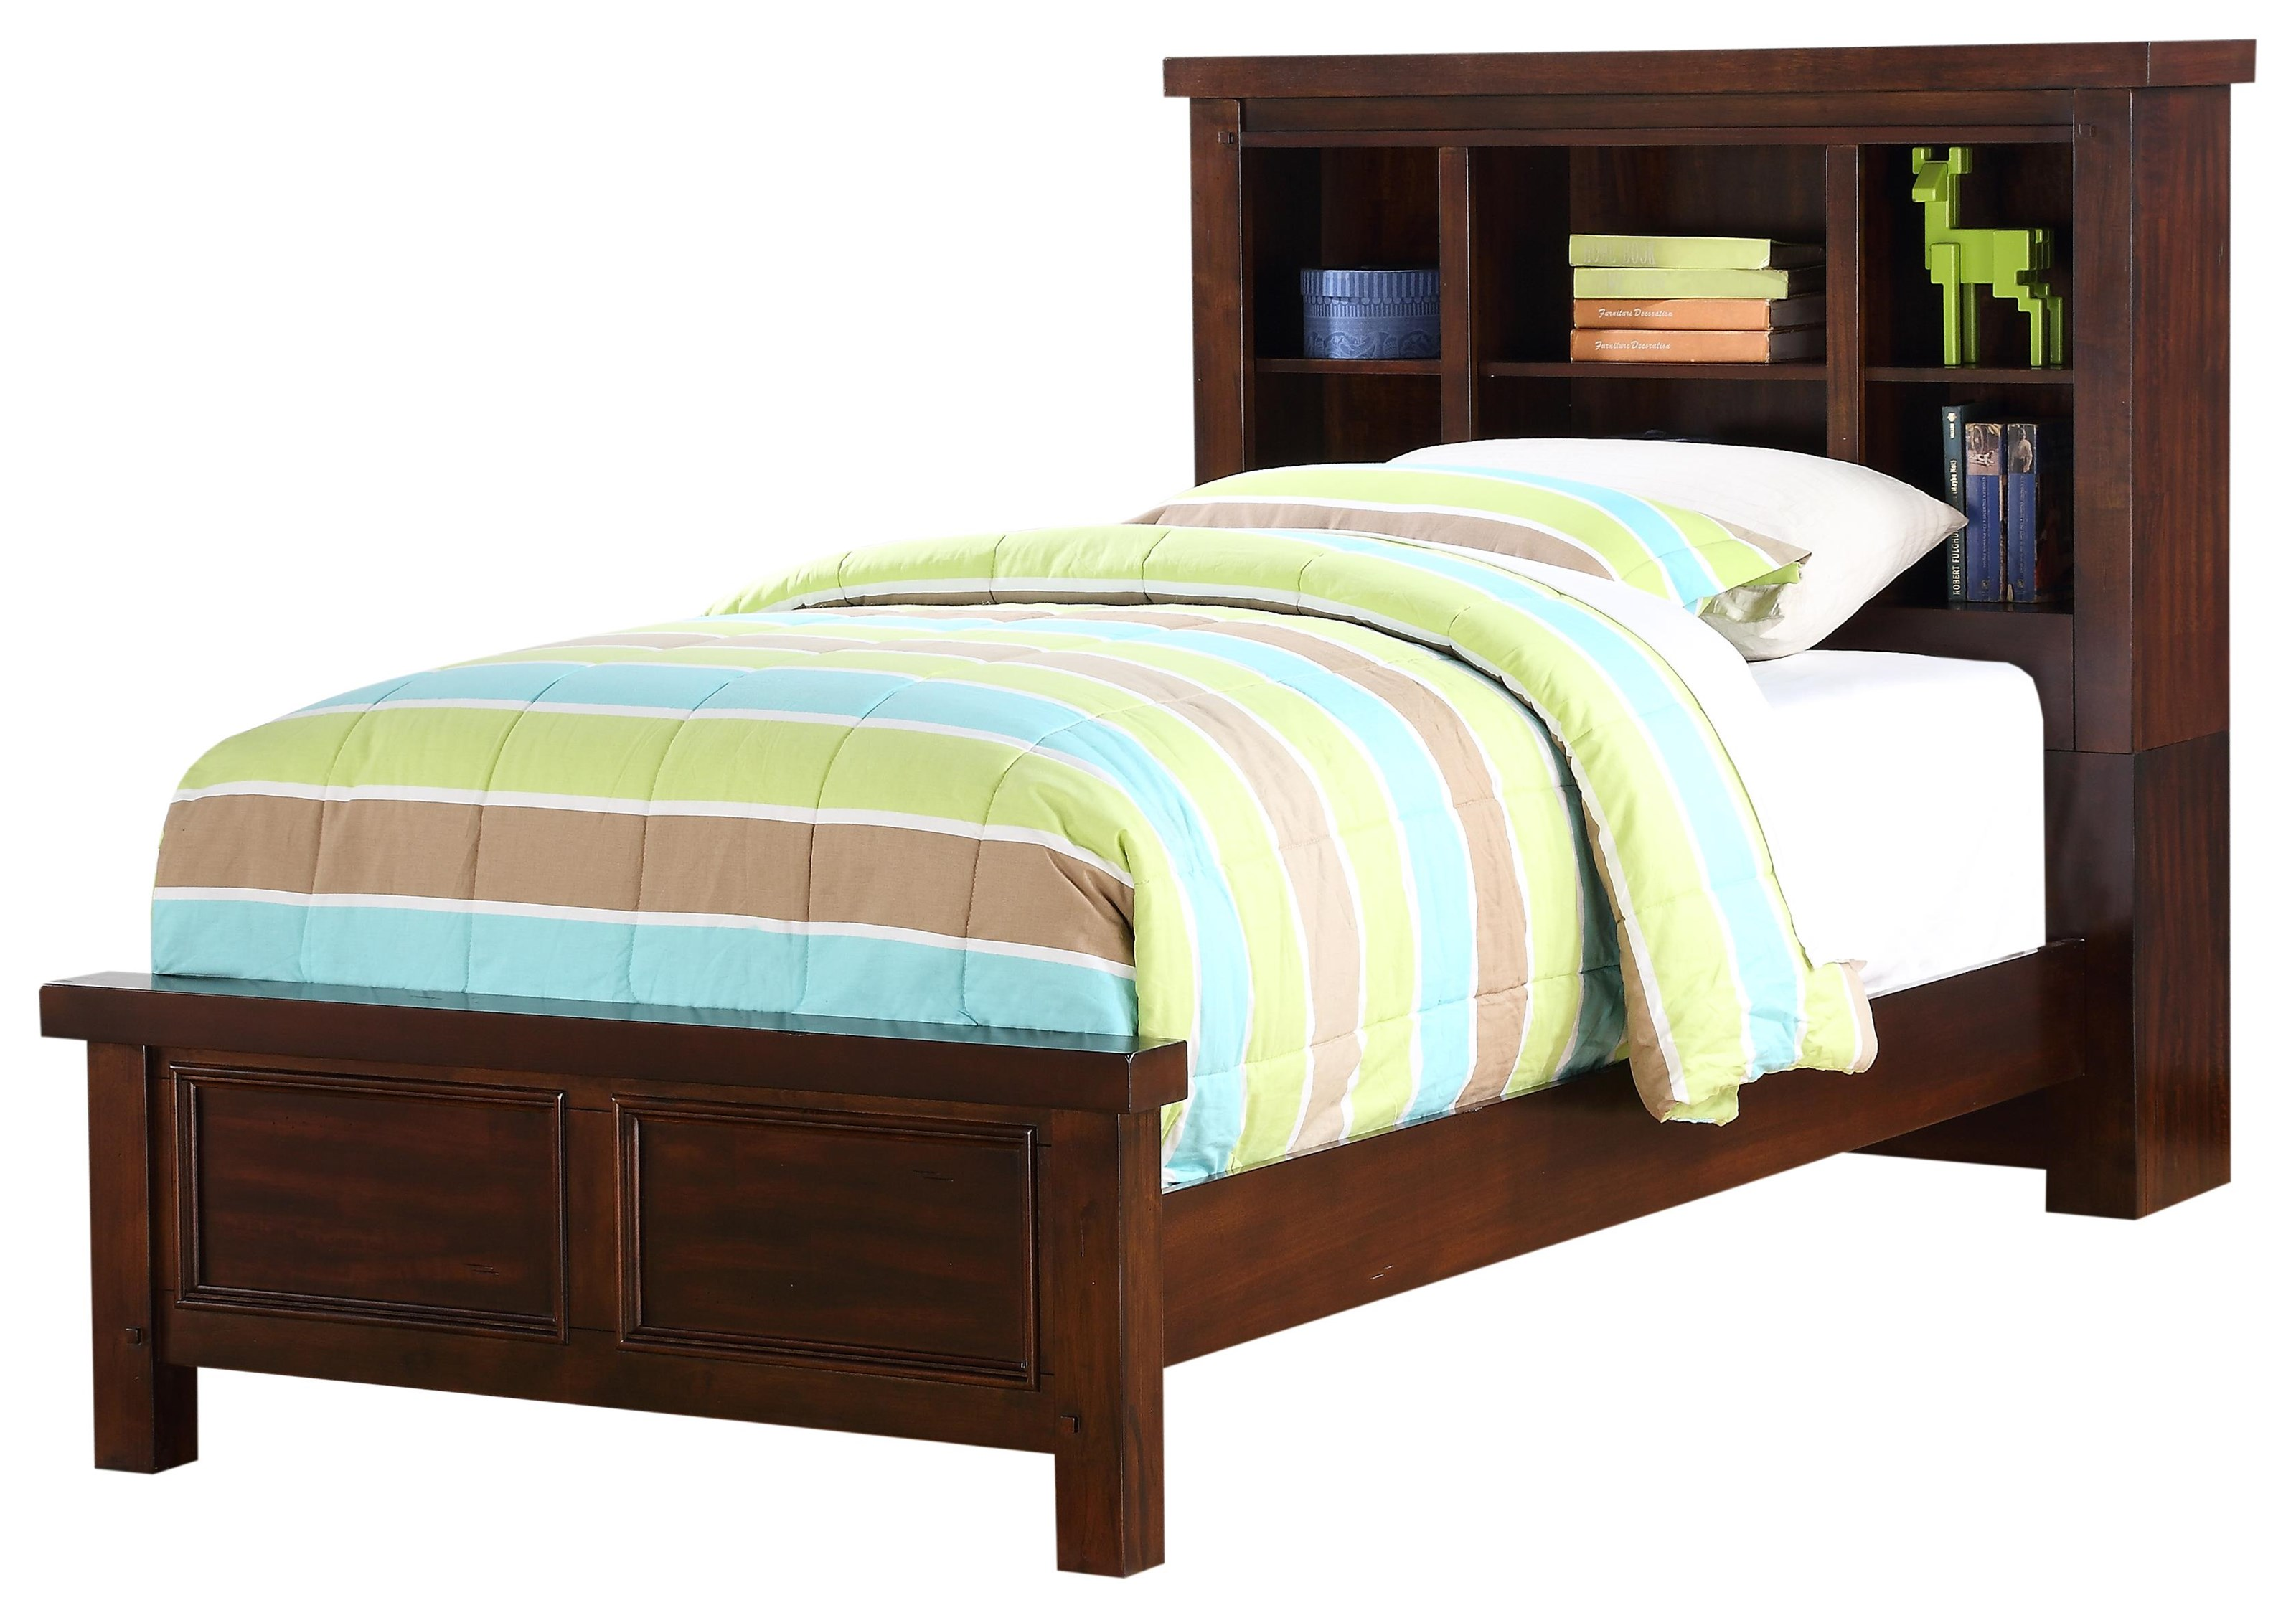 HAYWARD TWIN BOOKCASE BED by HH at Walker's Furniture